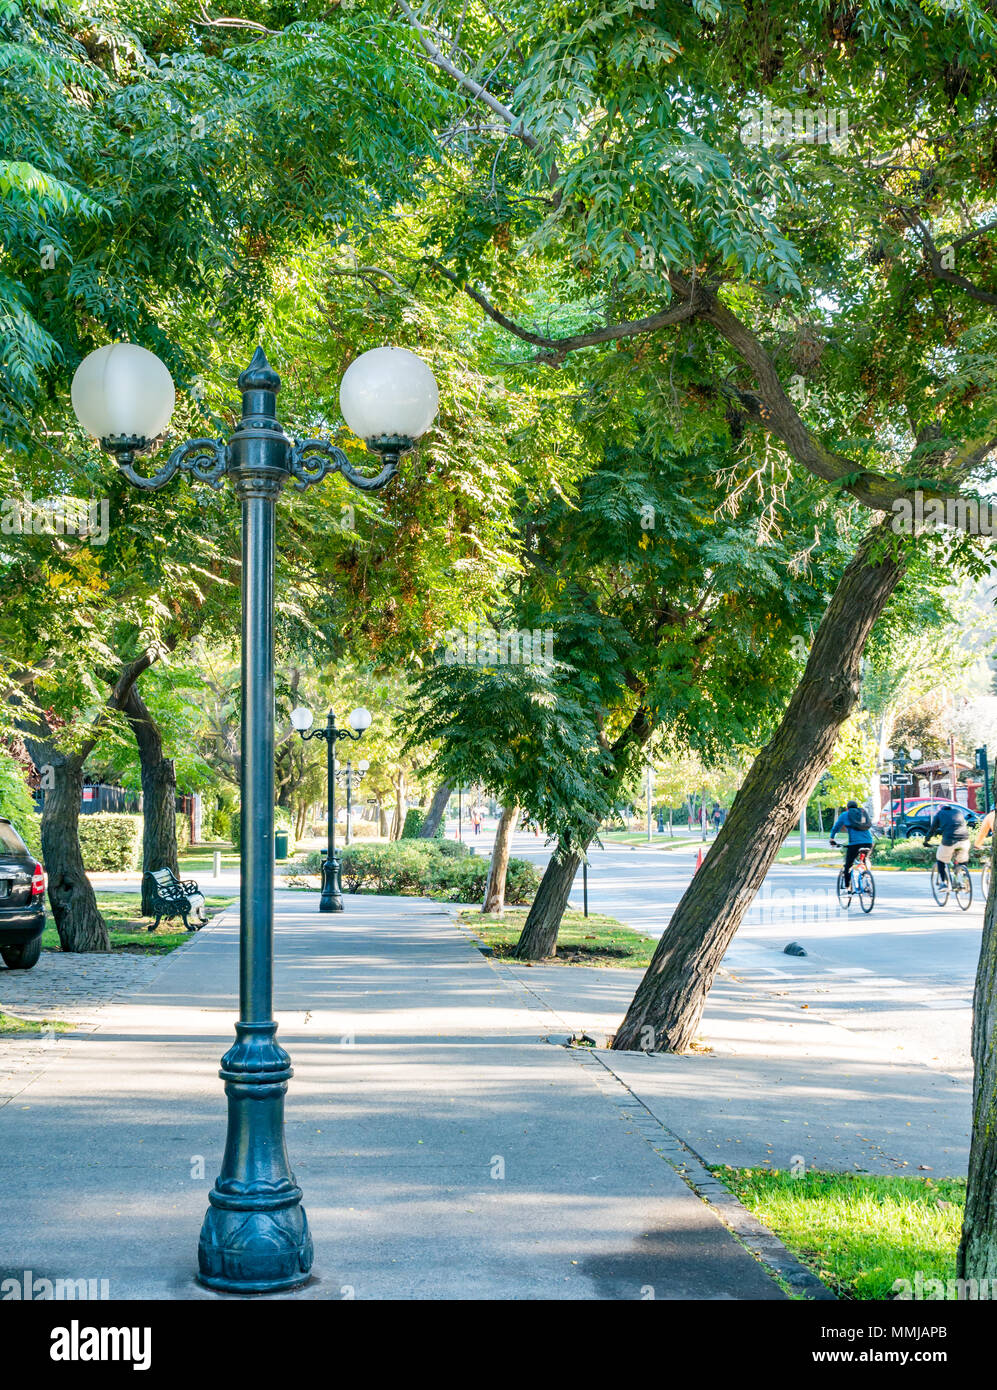 Pedro de Valdivia Street, quiet on Easter Sunday and closed to cars for public recreation with cyclists and old fashioned lamp post - Stock Image